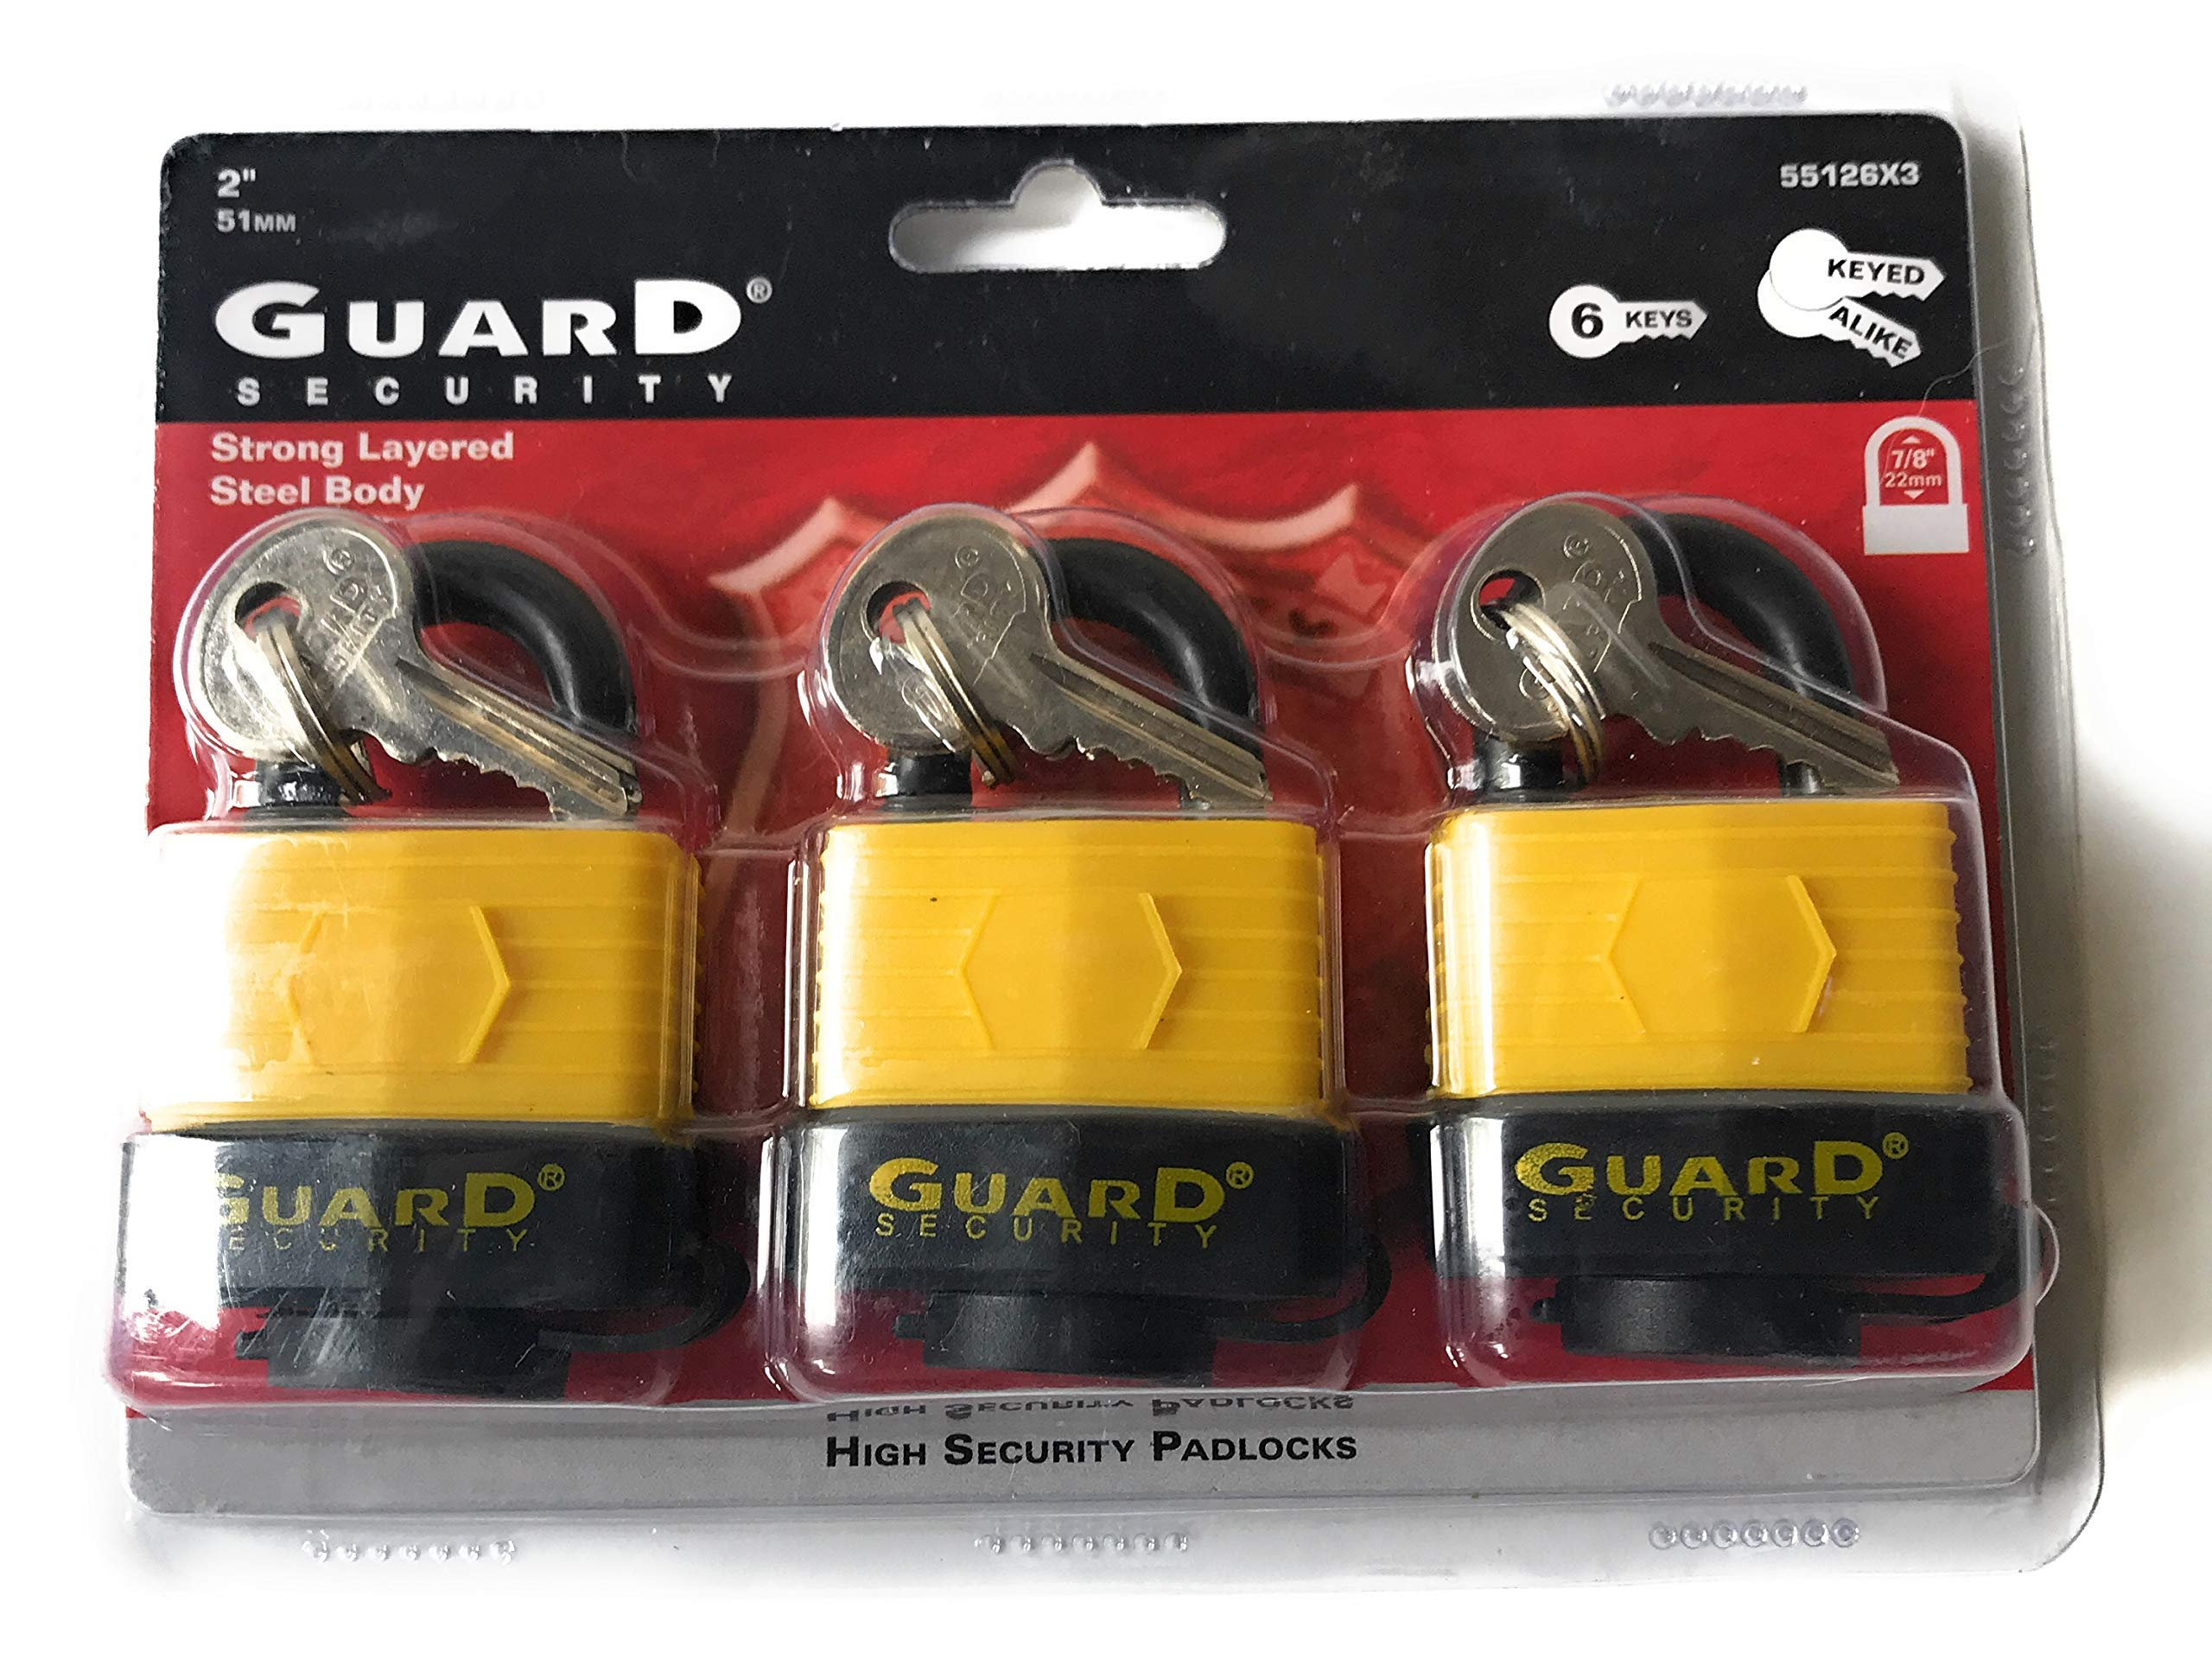 Guard Security Keyed Padlocks - Set of 3 High Security Padlocks with 6 Keyed Alike (Matching) Keys - Great Value! by Guard Security (Image #1)